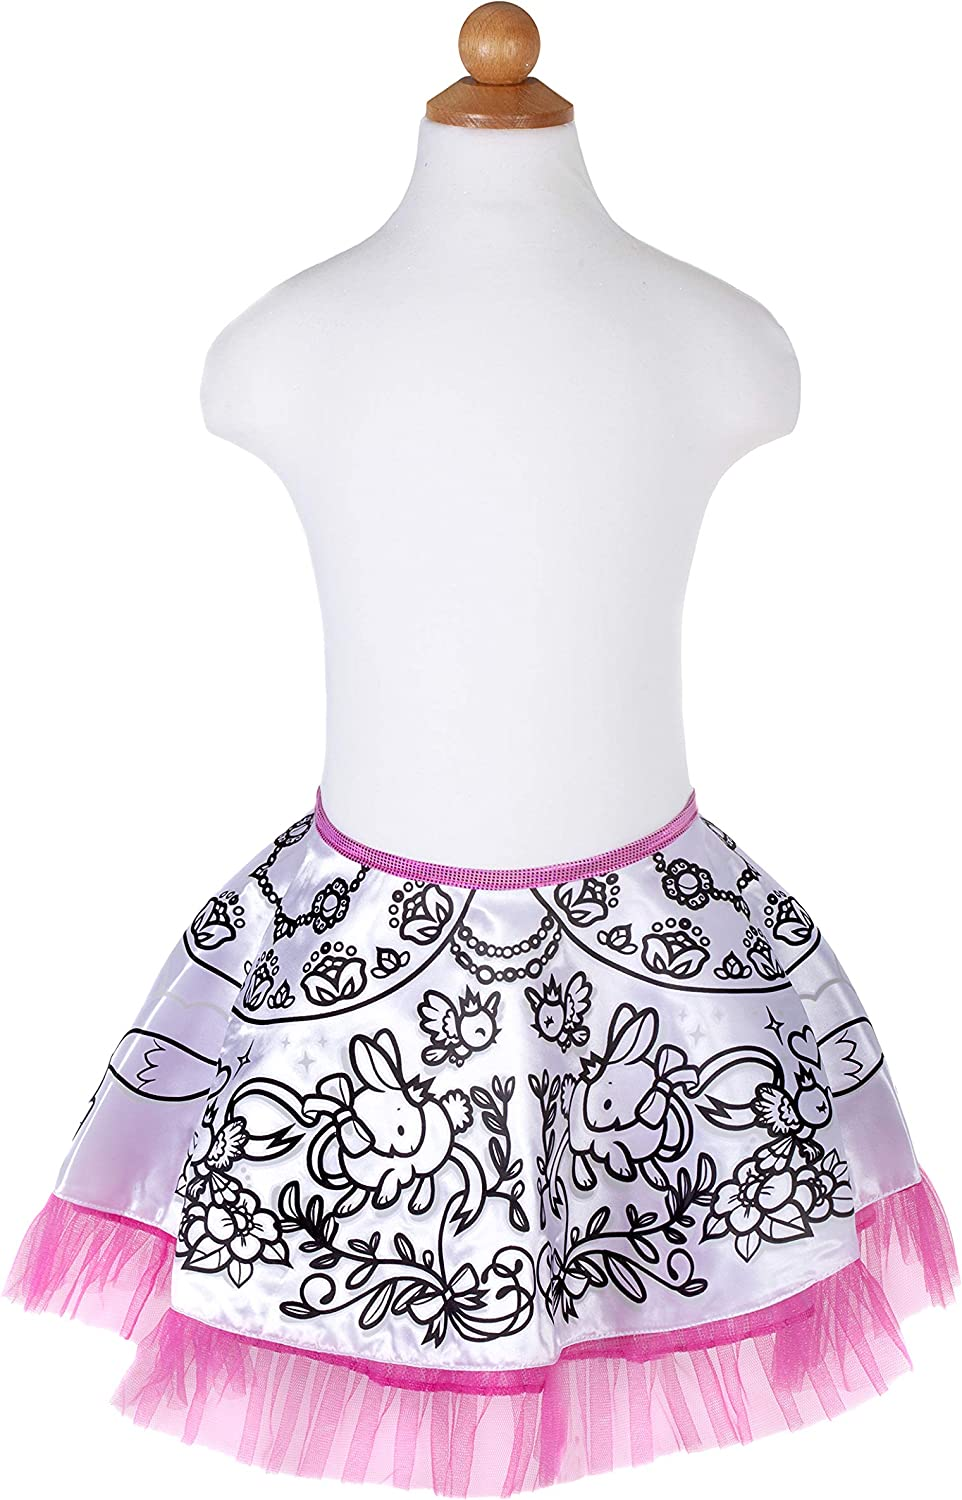 Colour-A-Skirt Great Pretenders 83080 US Size 4-6